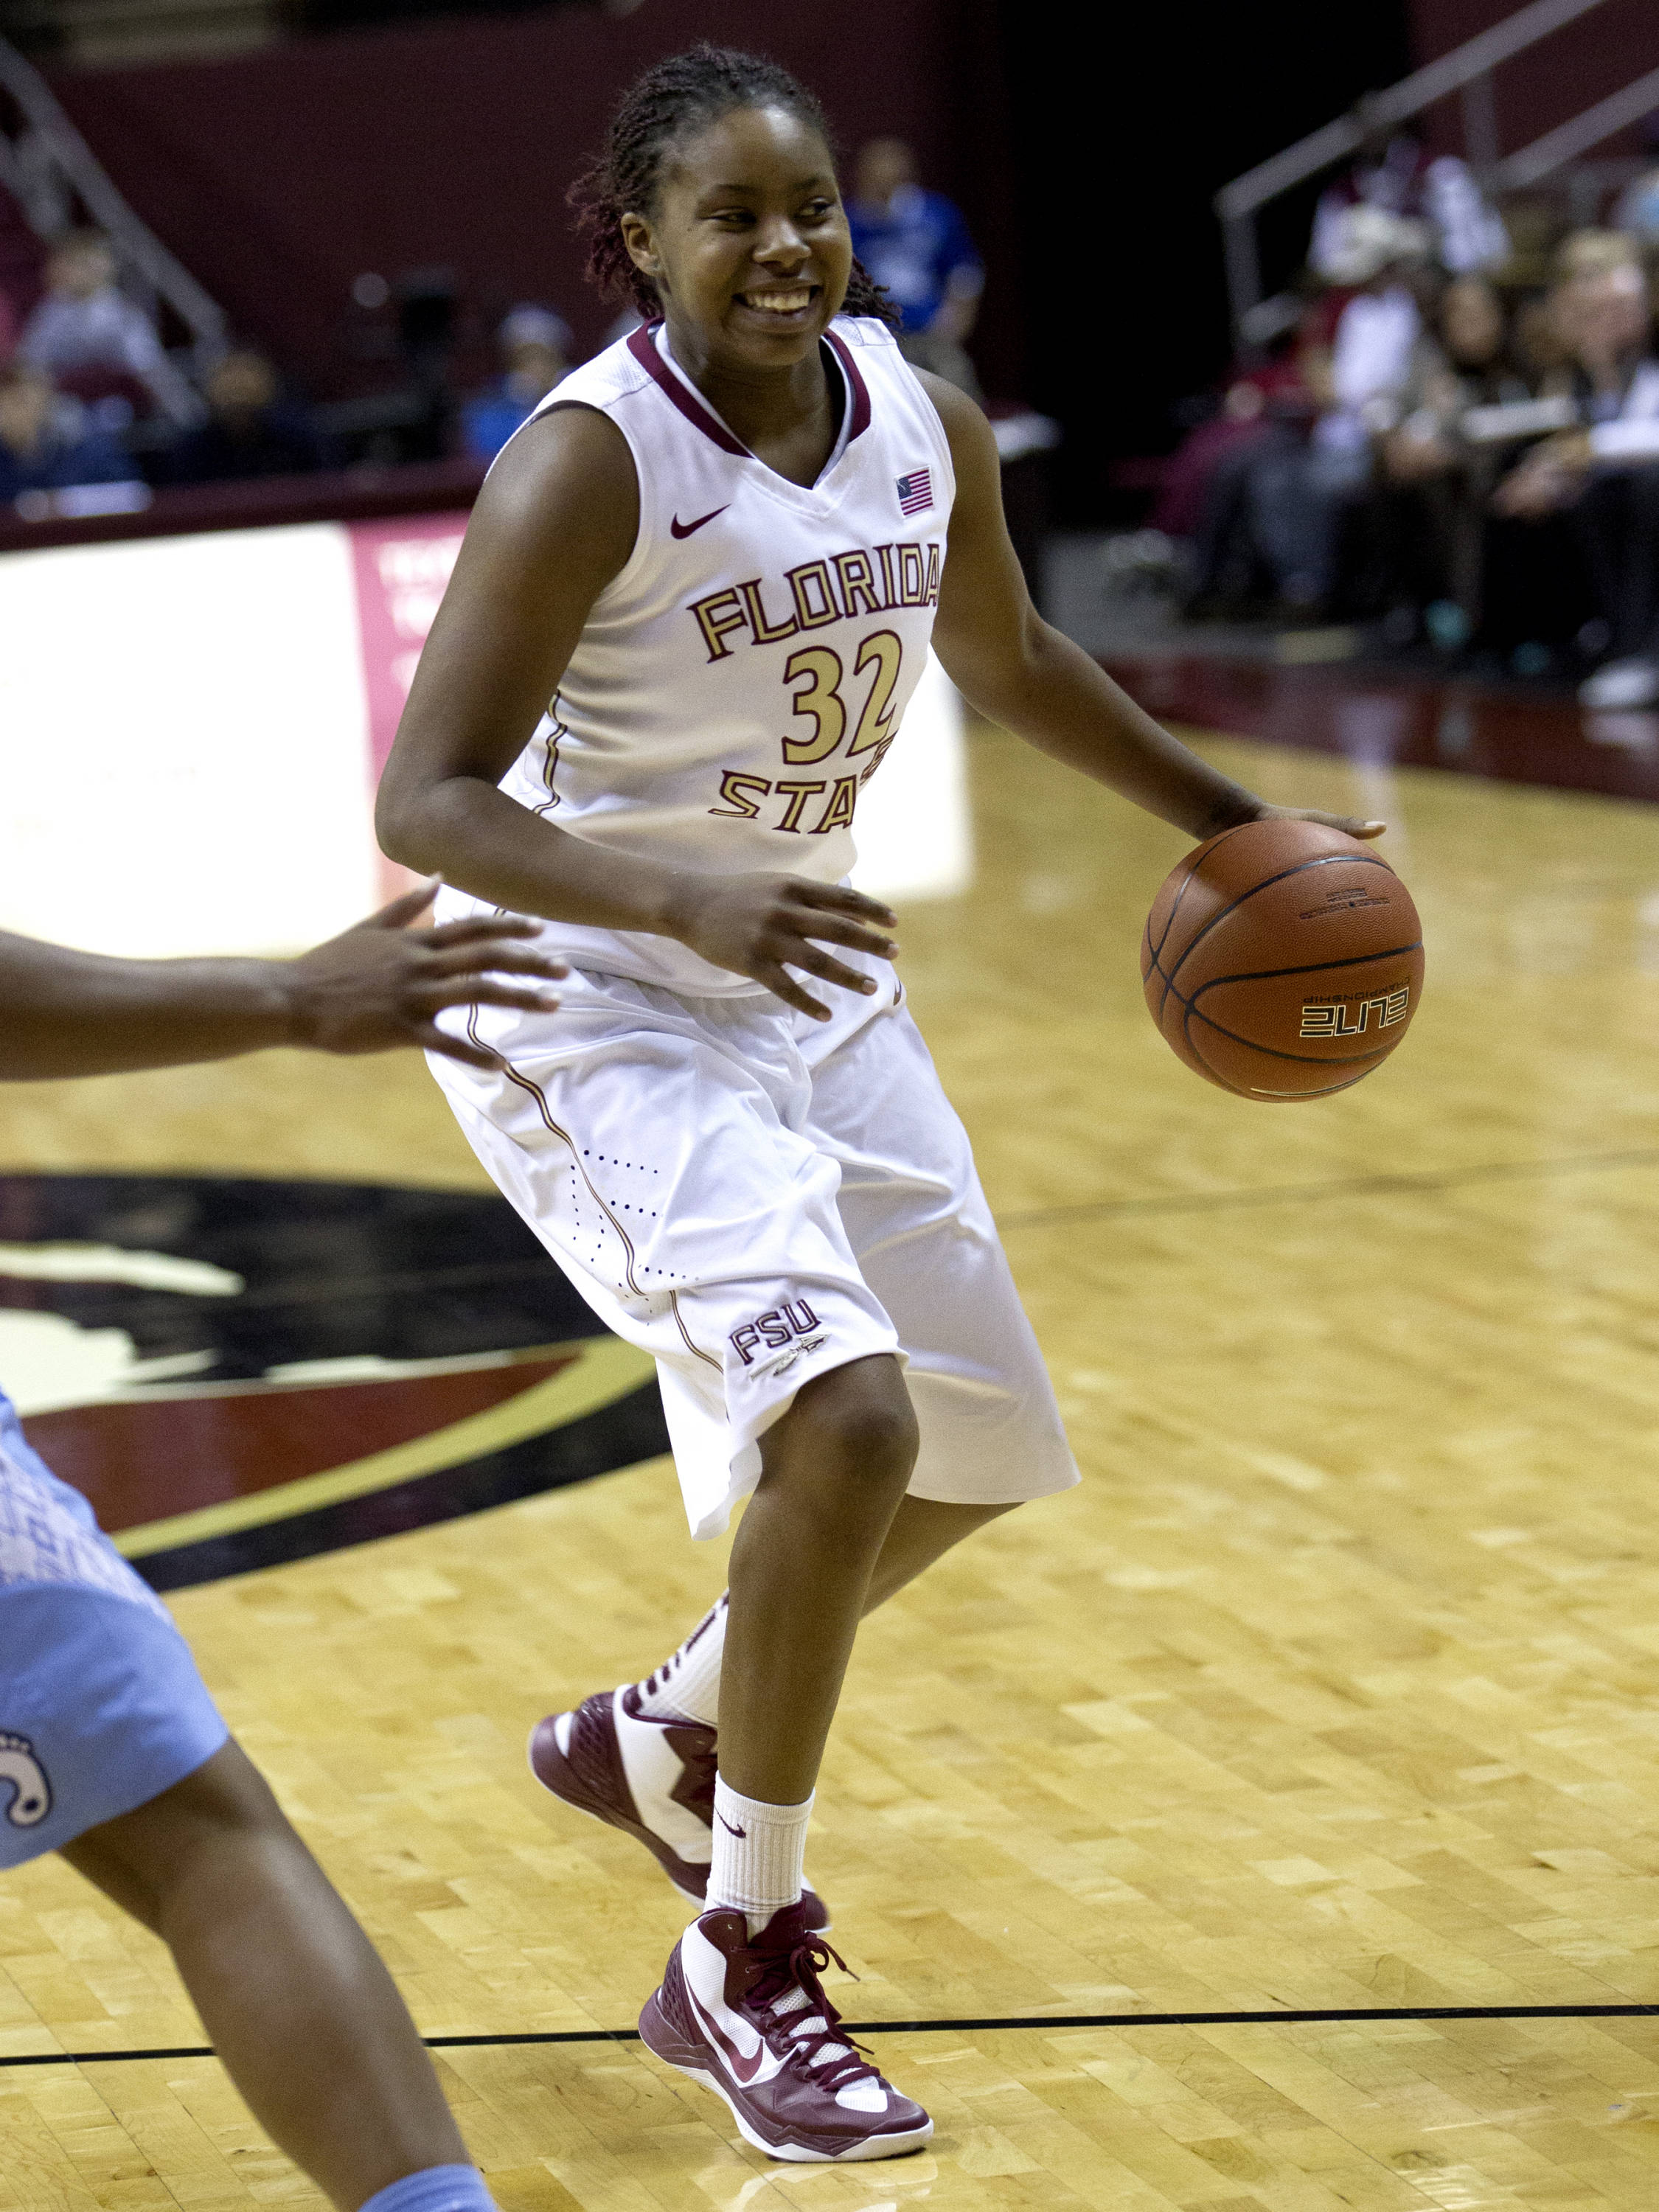 Lauren Coleman (32), FSU vs NC, 02/17/13. (Photo by Steve Musco)